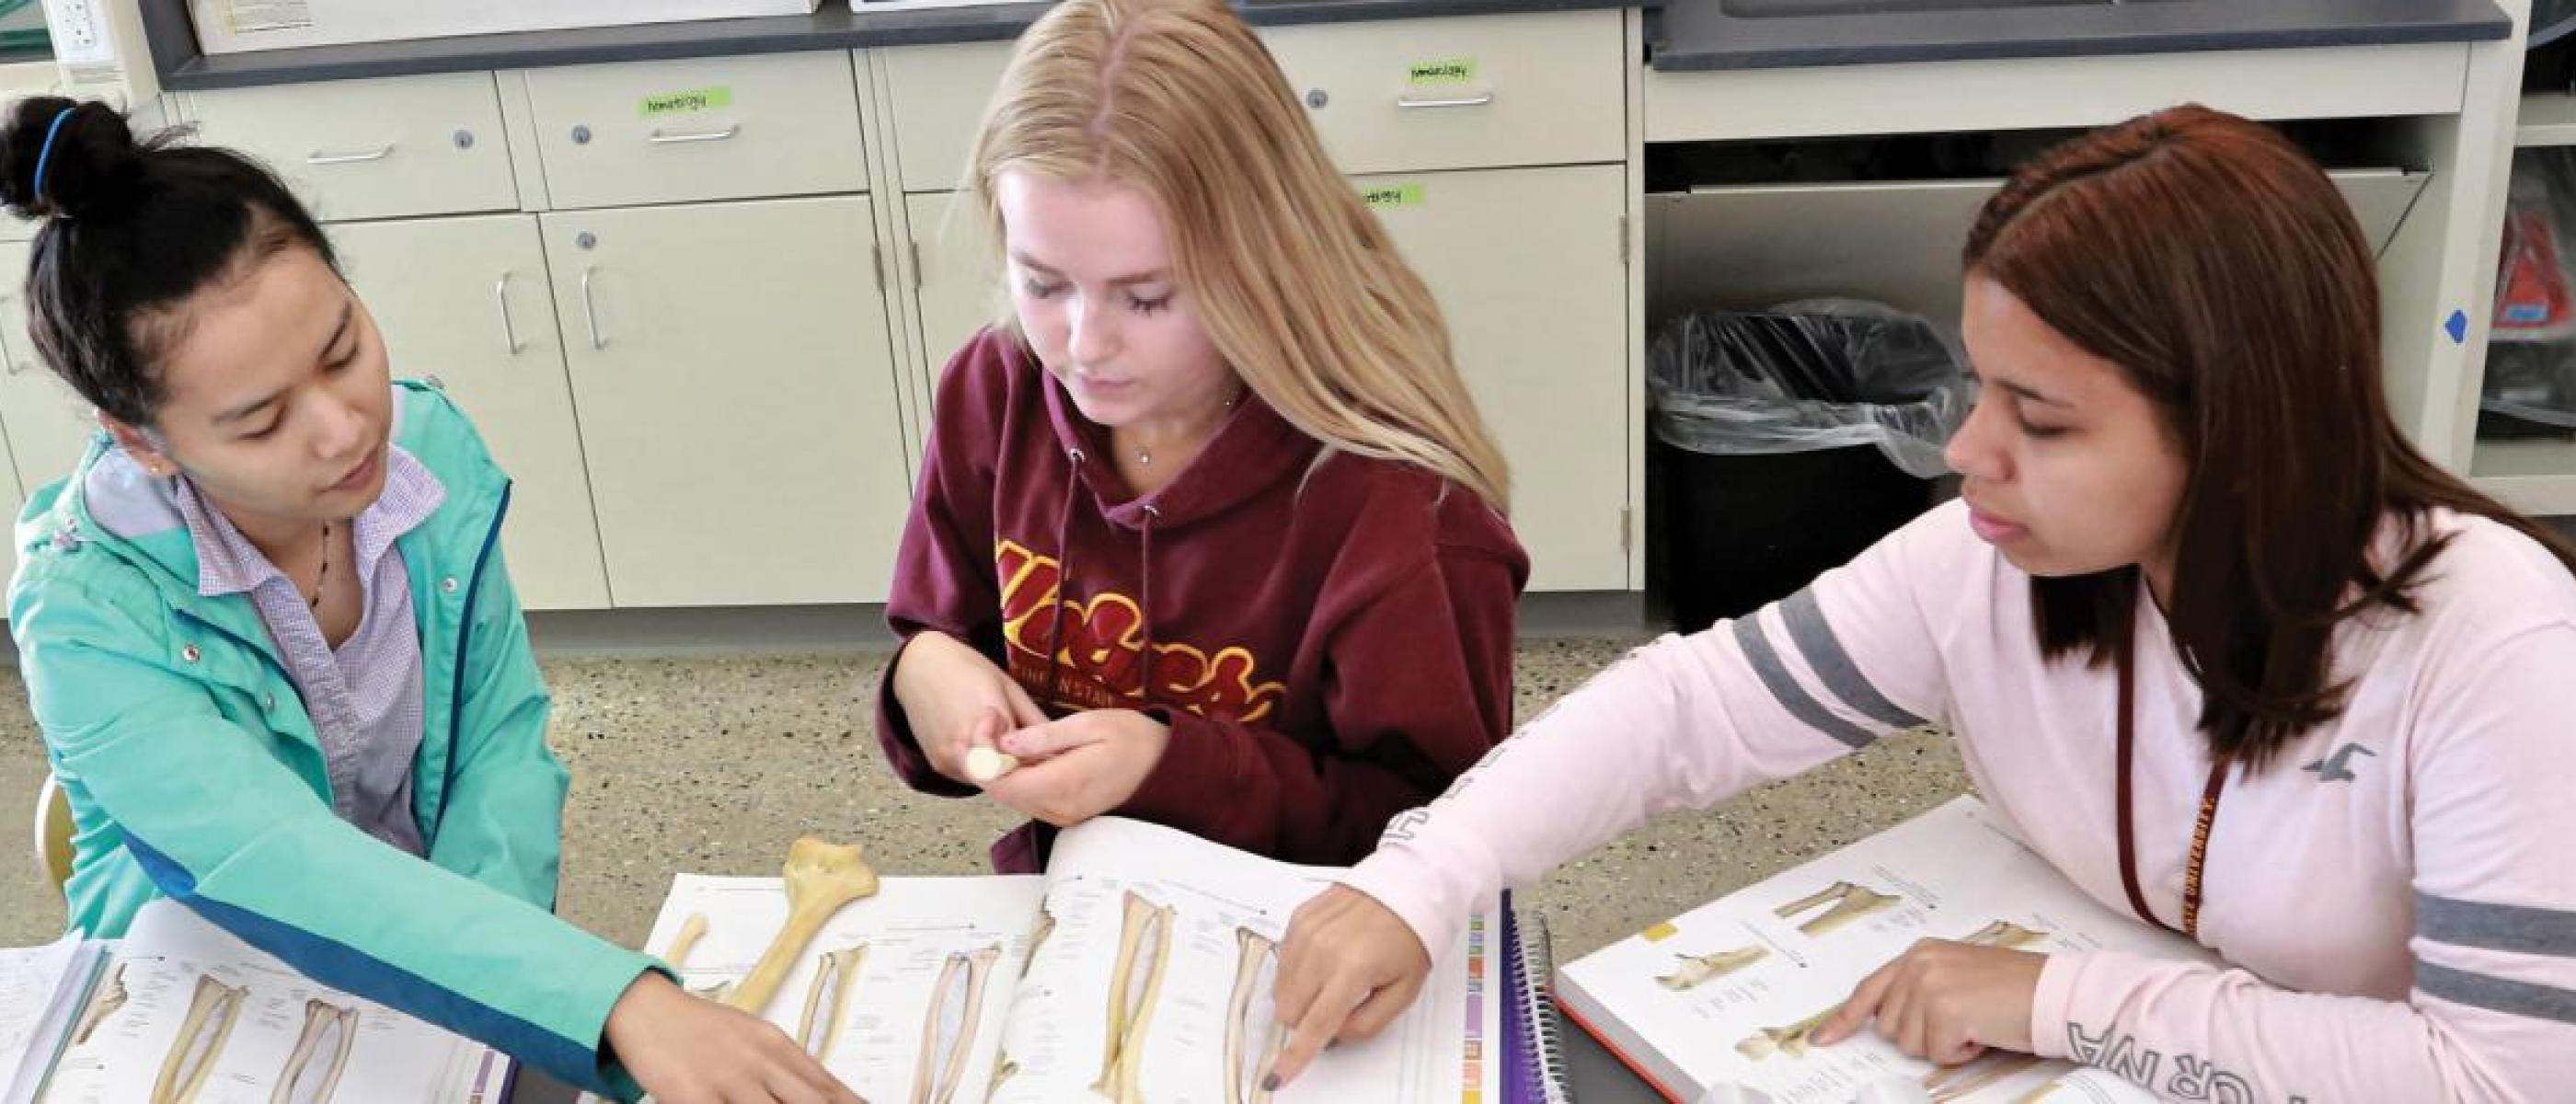 Three students working on anatomy work